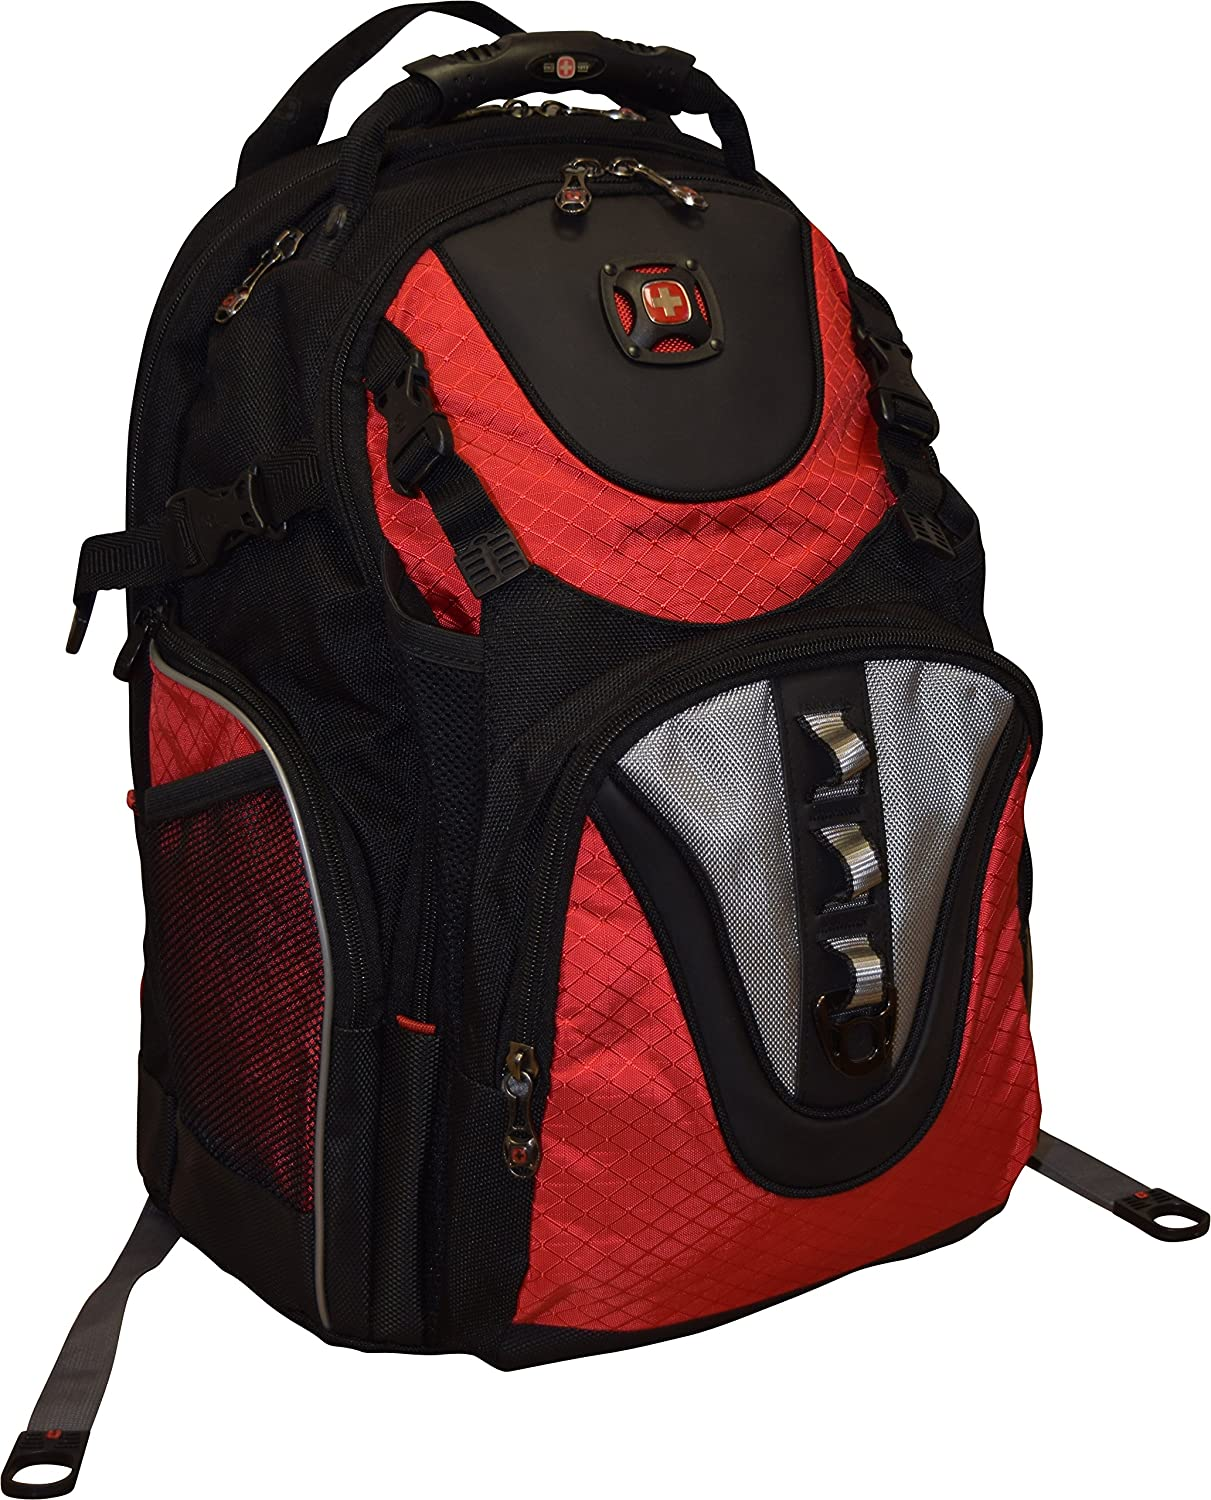 "SwissGear Maxxum Double Zipper Backpack With 16"" Laptop Pocket, Black/Red"